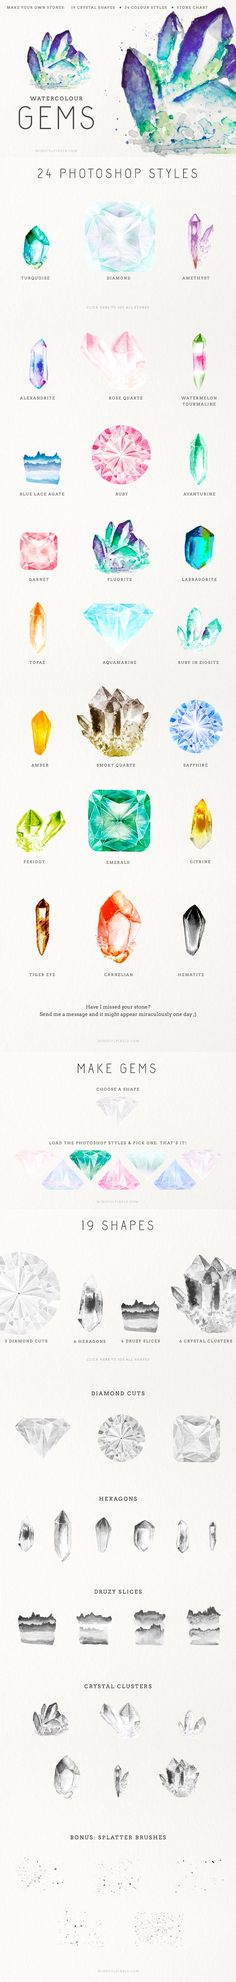 Gem Creator Kit Watercolor Crystal Clusters Clip Art Wedding Invitation Pocket Scrapbooking / Project Life / Journaling / Memory Keeping Watercolour Painting, Painting & Drawing, Watercolor Ideas, Watercolours, Gem Drawing, Watercolor Moon, Watercolor Wedding, Drawing Tutorials, Art Tutorials